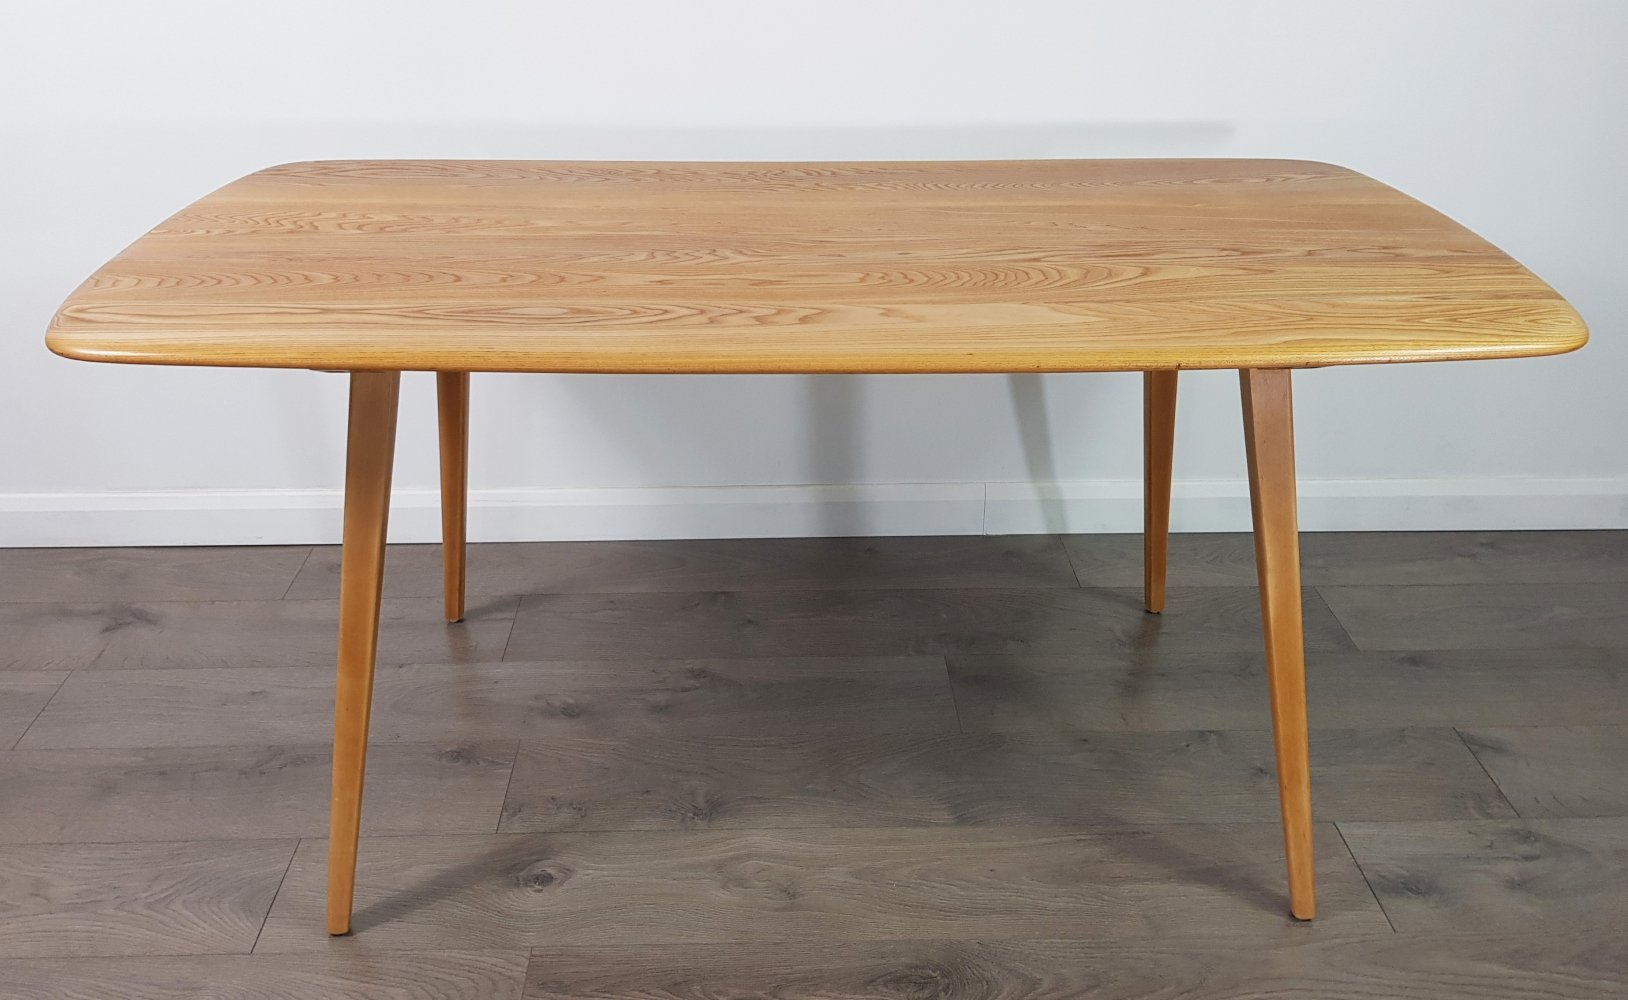 Ercol Plank Table, 1960s